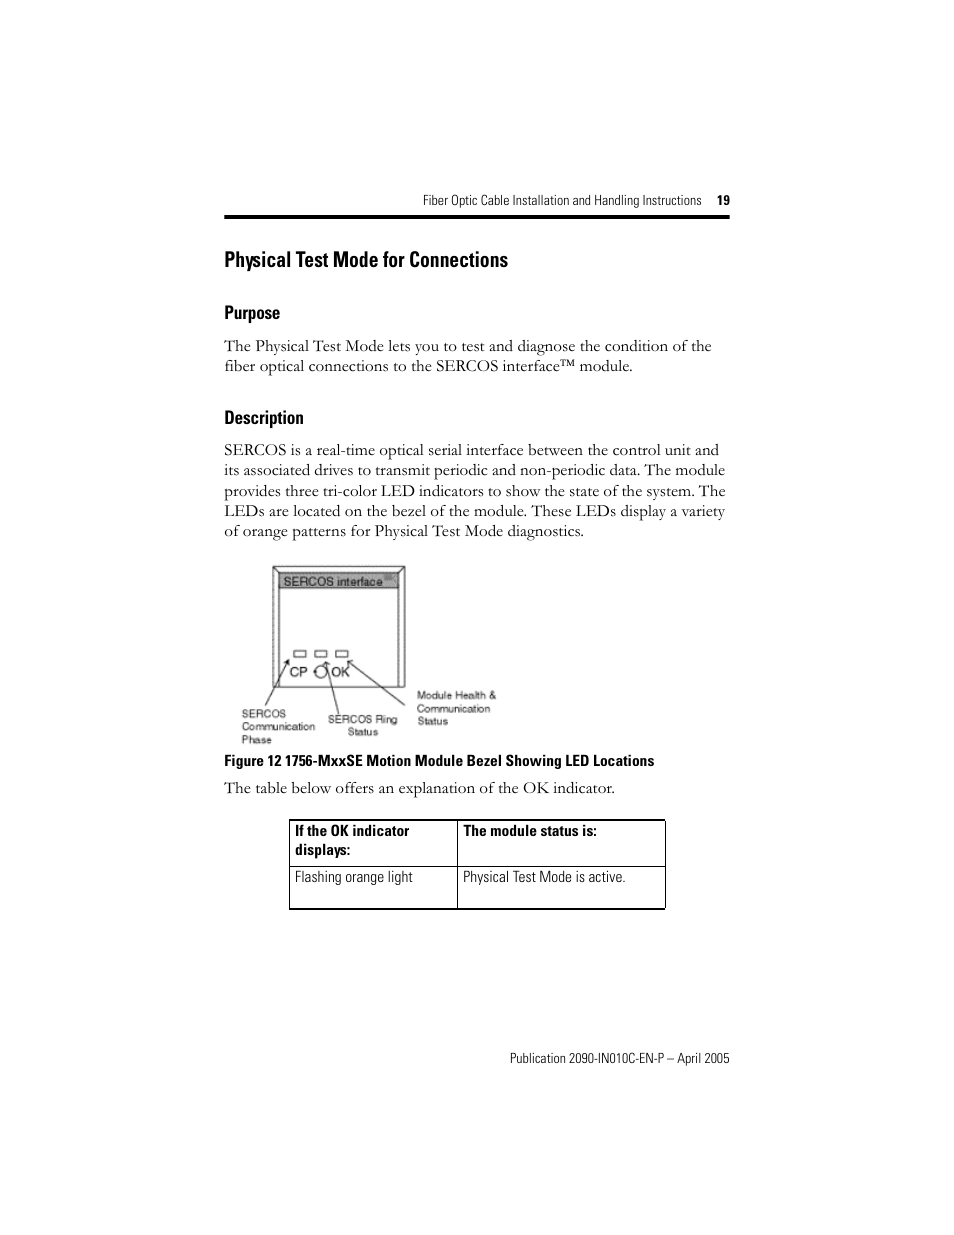 Physical Test Mode For Connections Purpose Description Rockwell Tri Color Led Wiring Of A Automation 2090 Xxx Fiber Optic Cable Installation And Handling Instructions User Manual